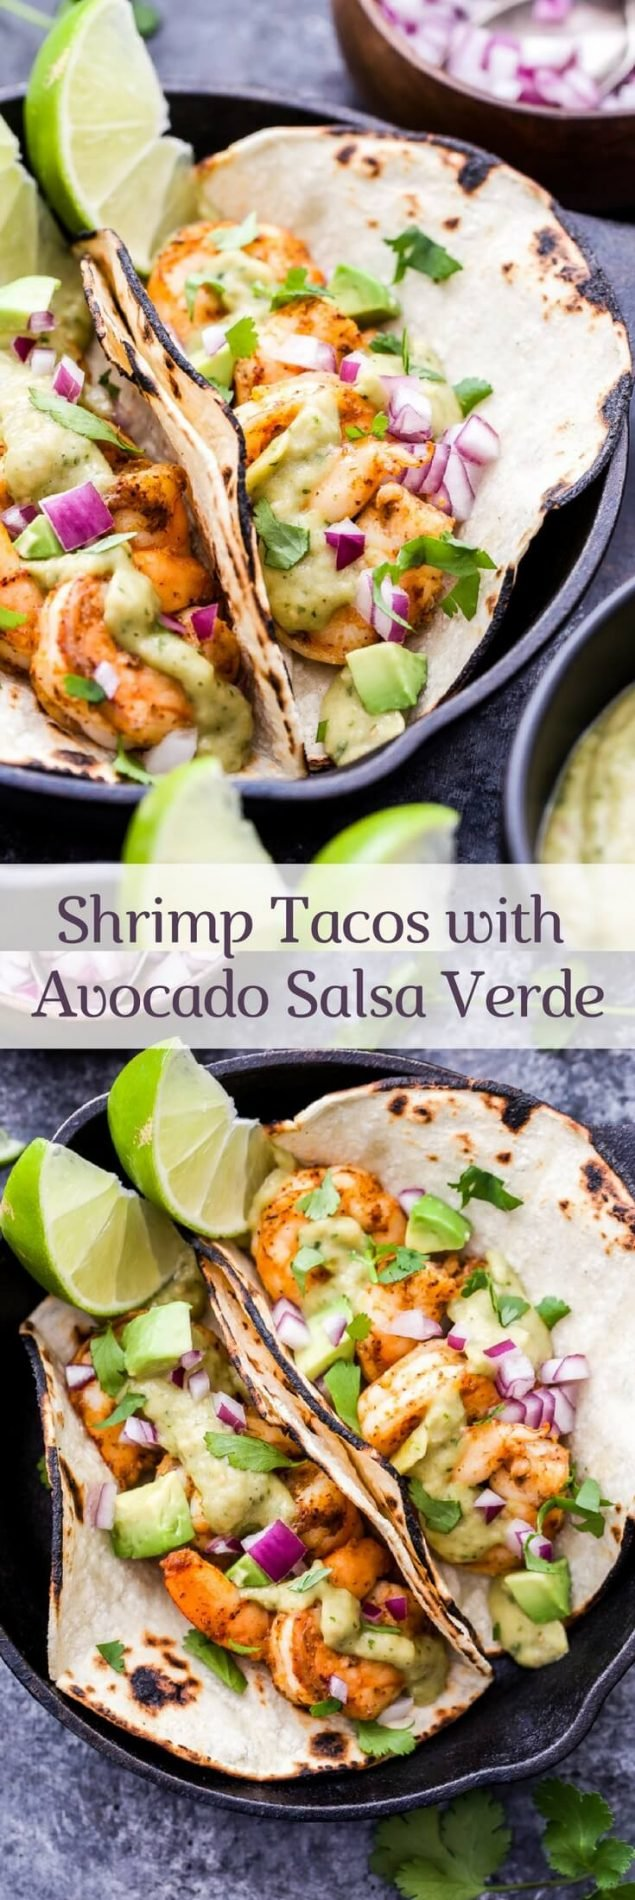 Shrimp Tacos with Avocado Salsa Verde make for an easy and healthy Mexican dinner! Pan seared shrimp topped with the most addictive salsa you'll ever eat and all on the table in 30 minutes! #tacos #shrimp #avocado #salsaverde #glutenfree